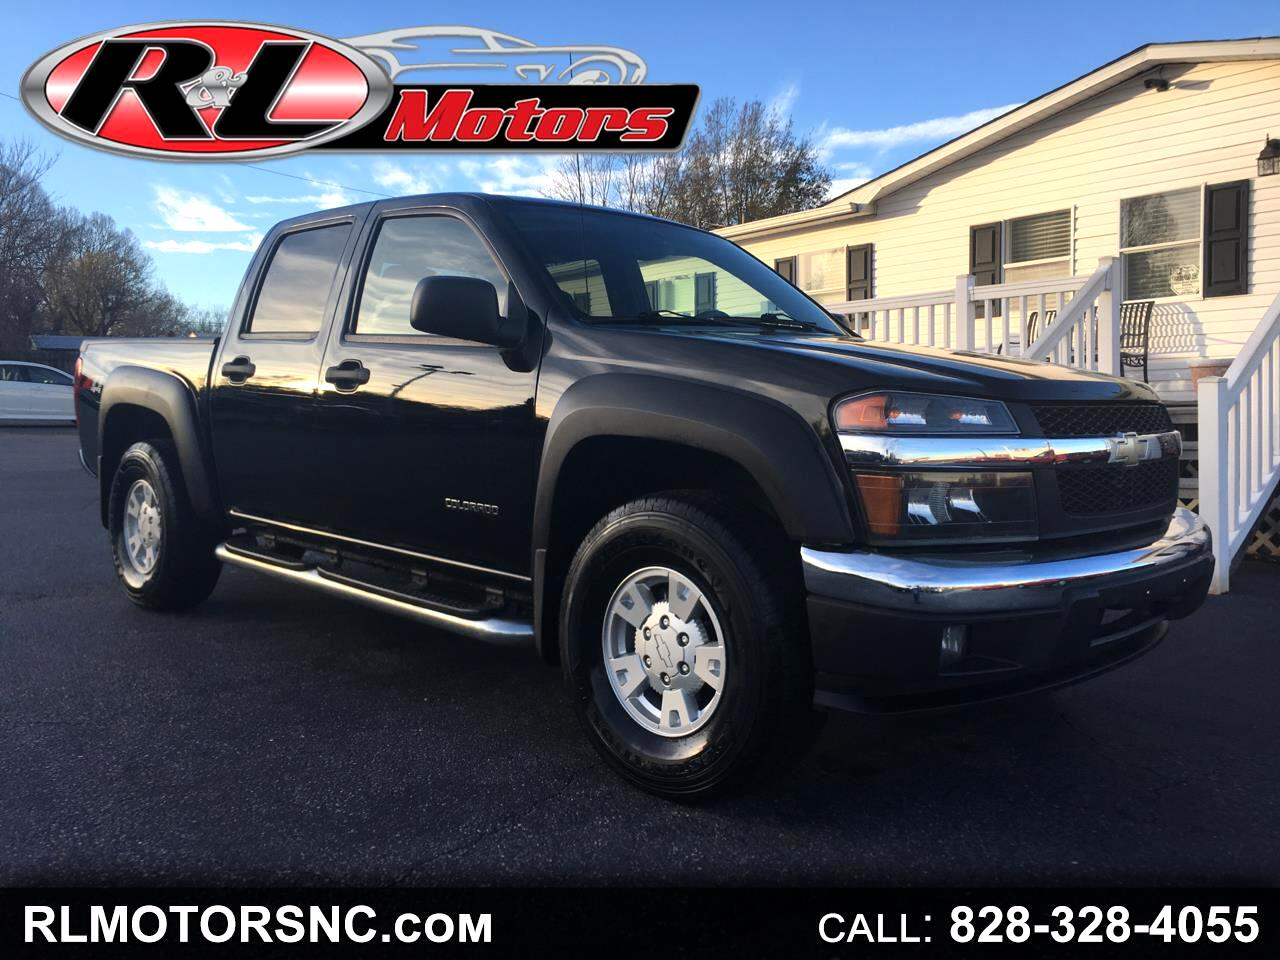 Buy Here Pay Here 2005 Chevrolet Colorado For Sale In Hickory Nc